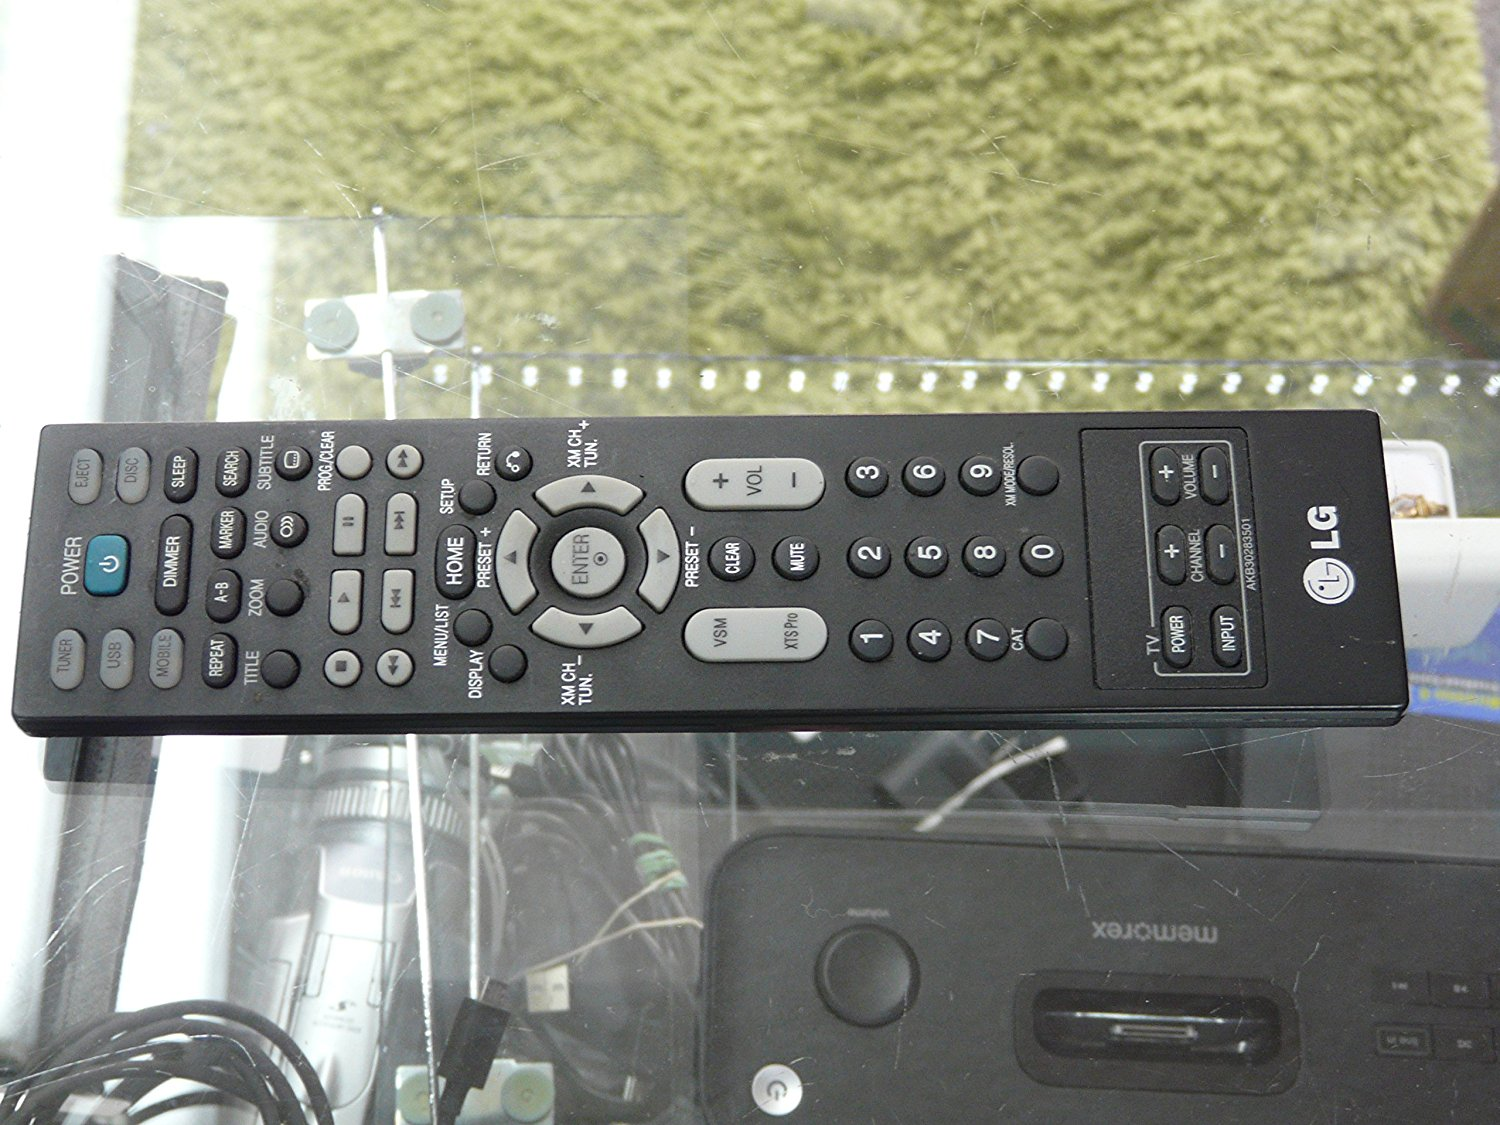 Genuine LG J10D/LFD790 Compact Home Theater REMOTE CONTROL Model